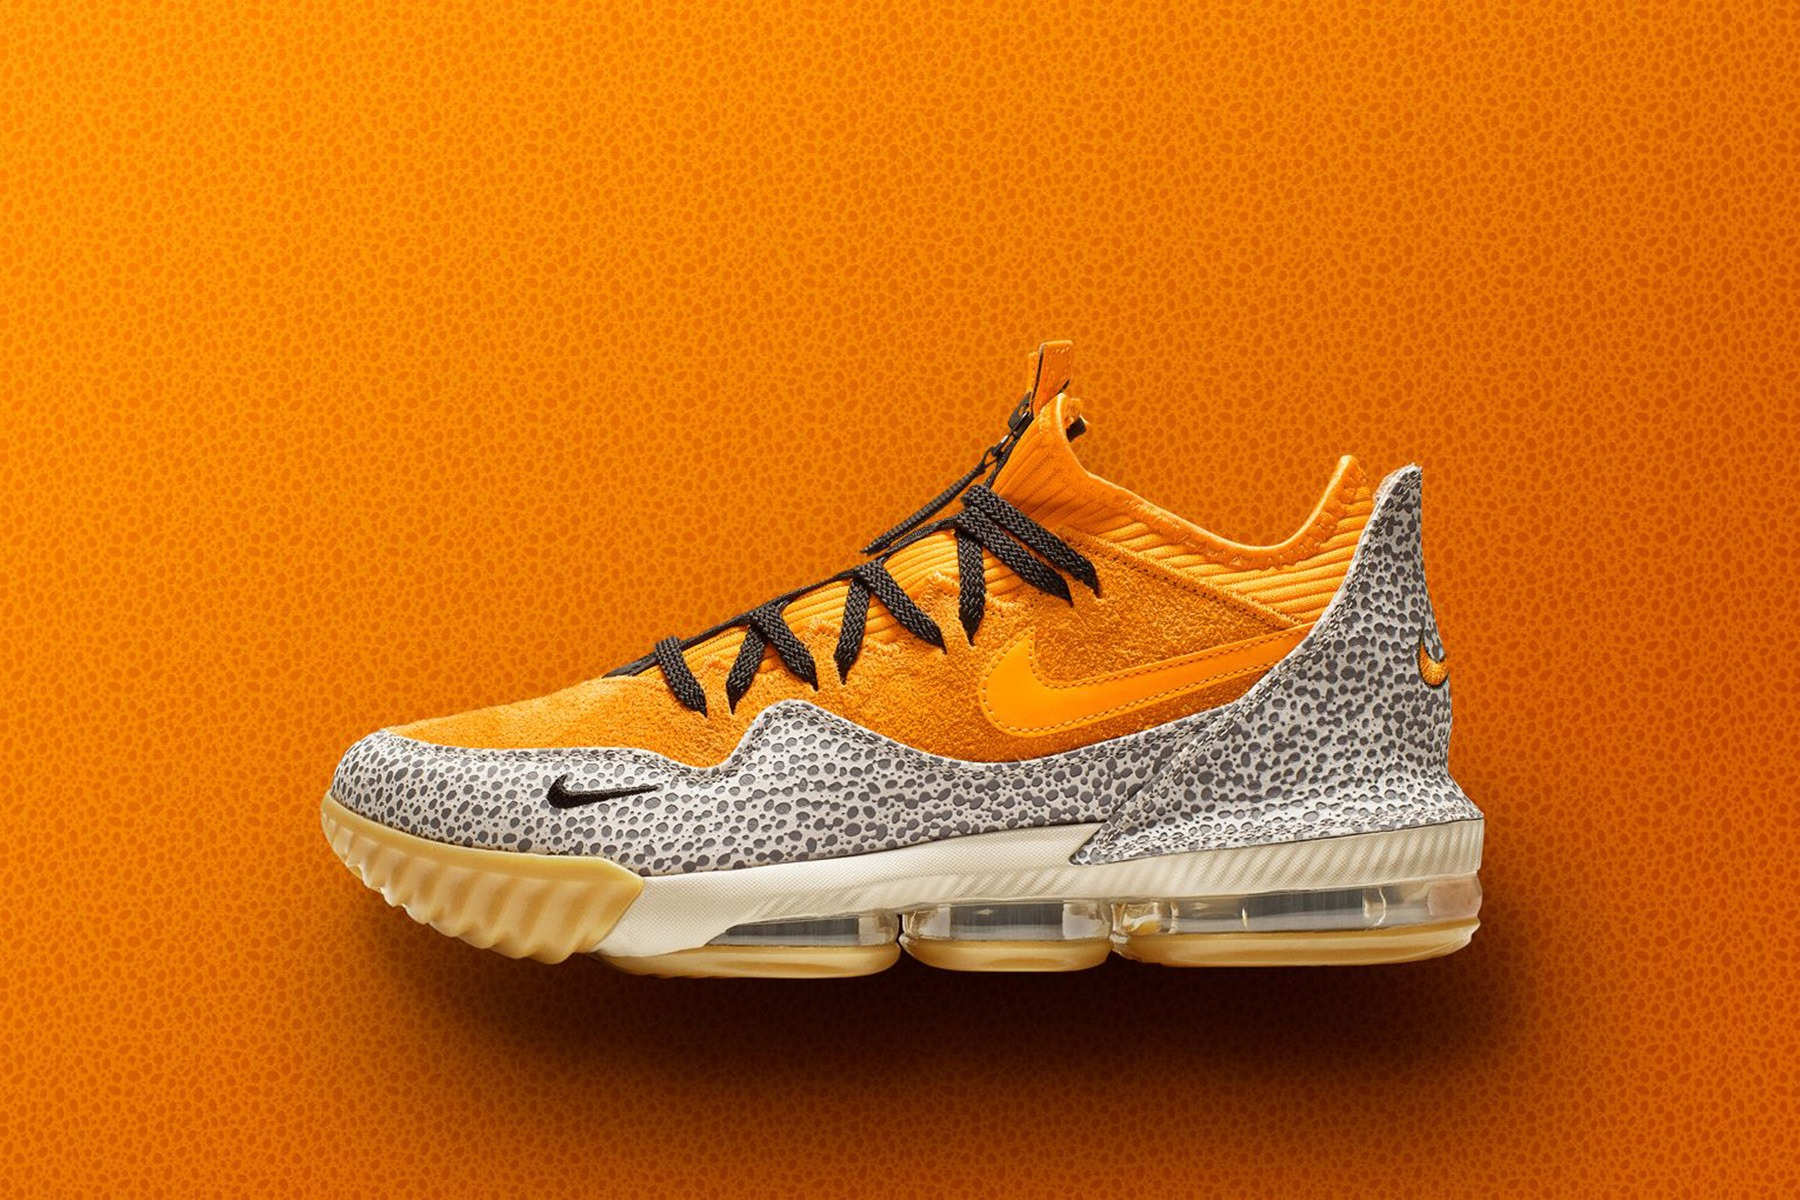 """c72ba089e11f Nike is making connections to 2003 to create the LeBron 16 Low x atmos  """"Safari""""."""